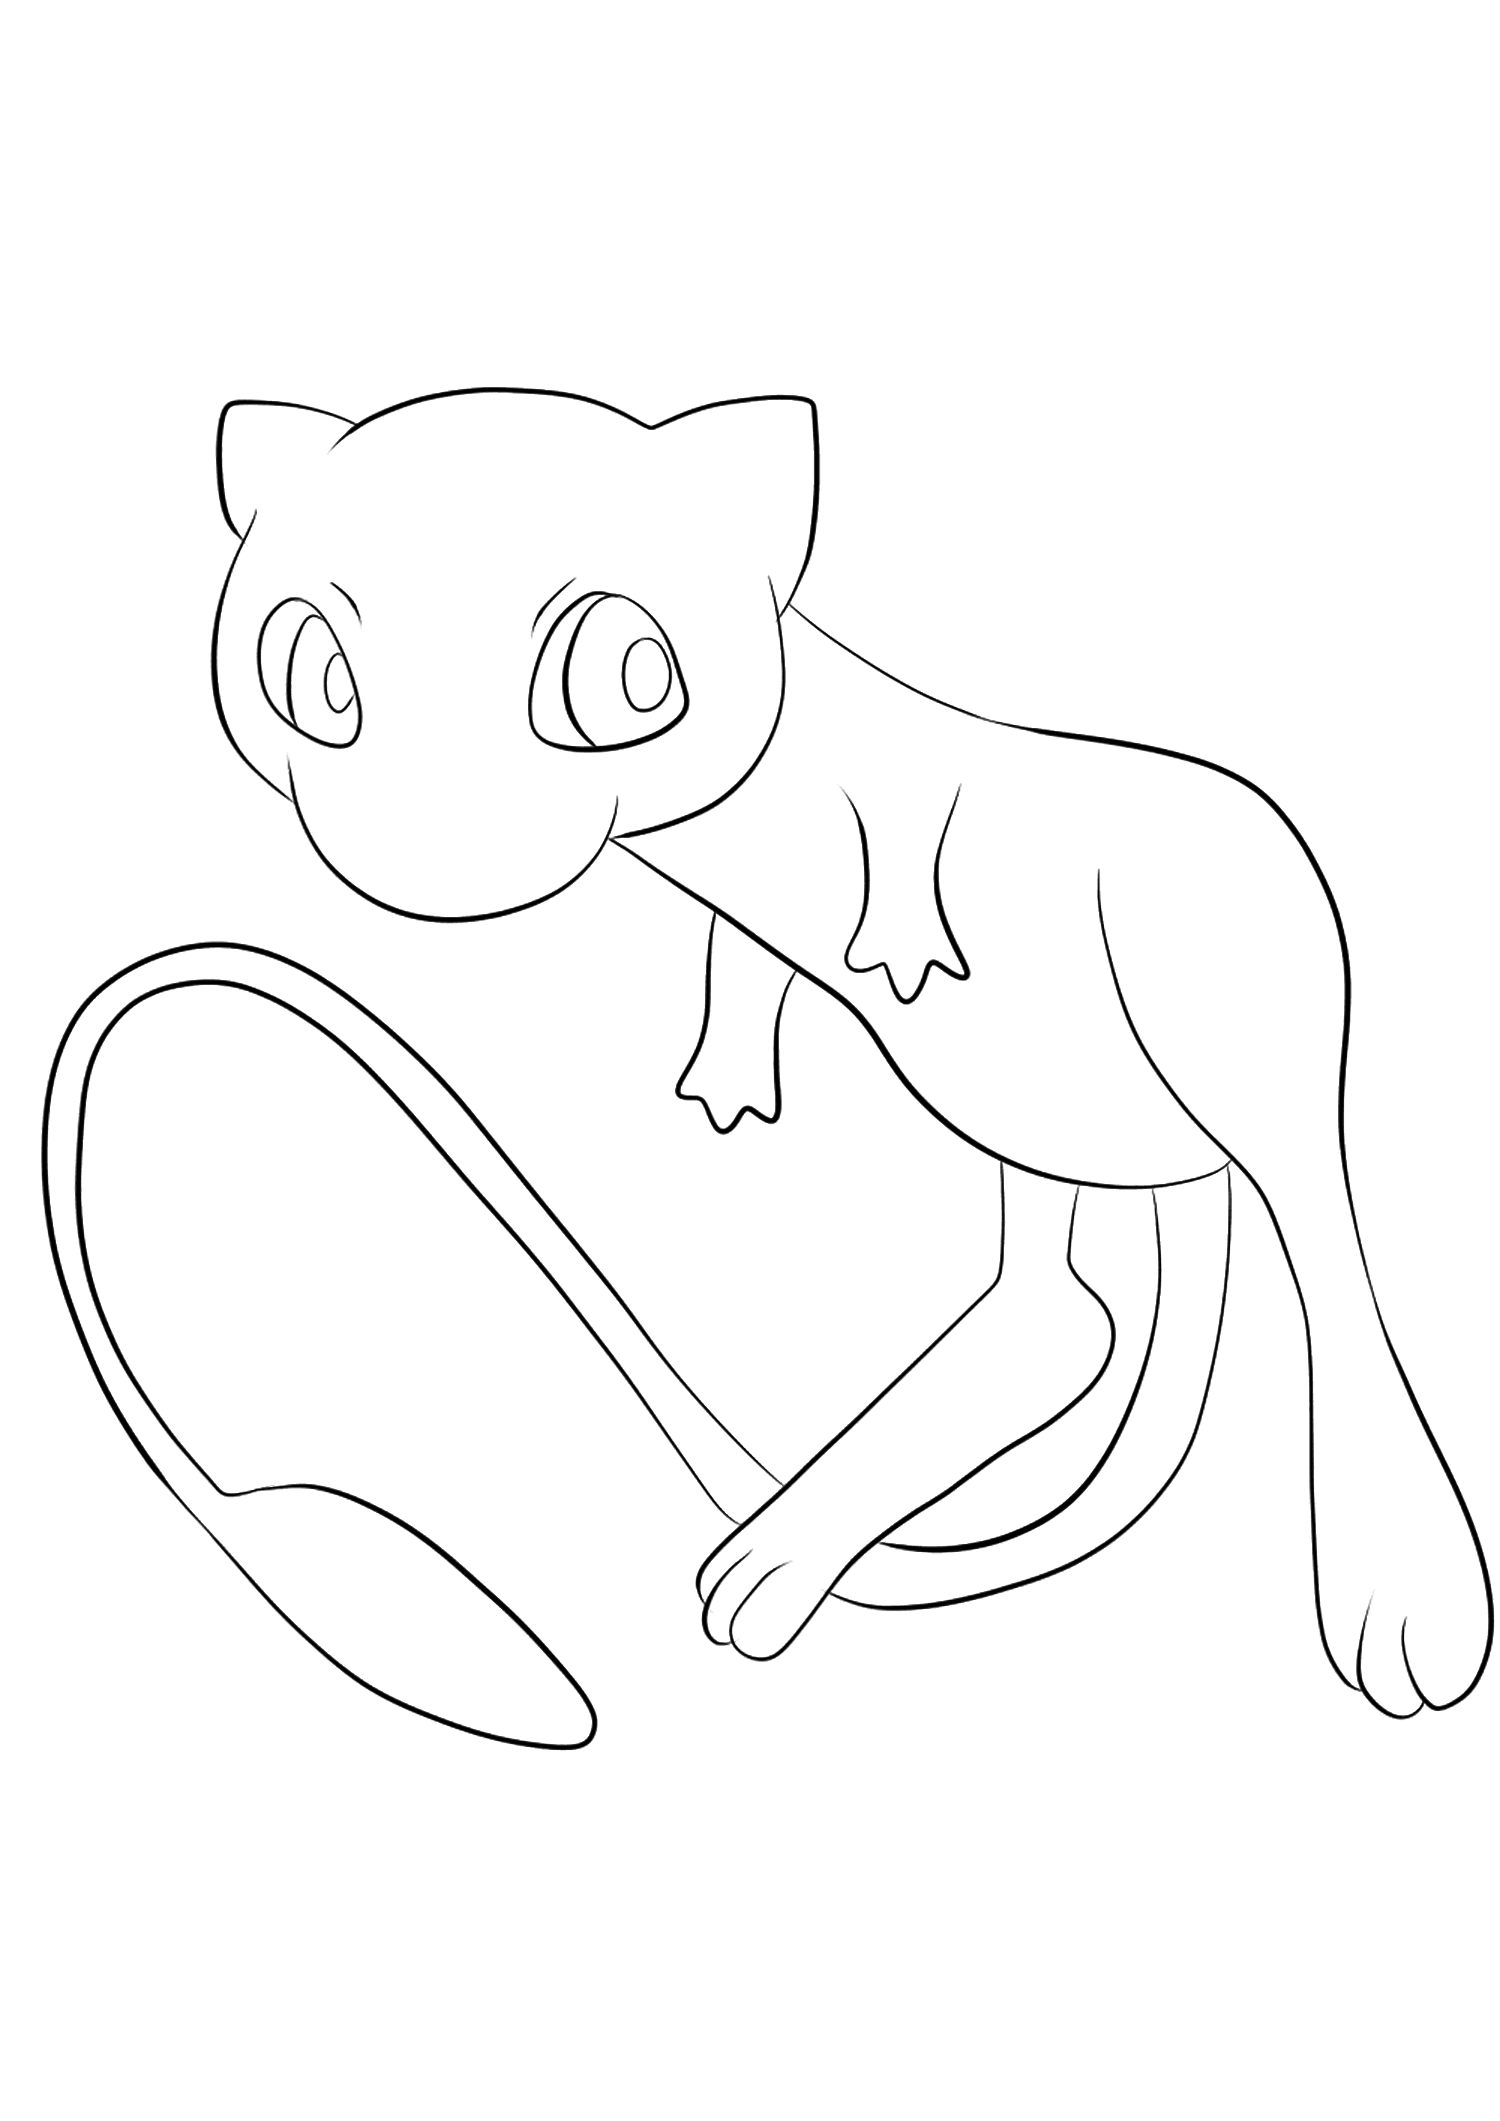 Mew (No.151)Coloriage de Mew (Mew), Pokémon de Génération II, de type : PsyOriginal image credit: Pokemon linearts by Lilly Gerbil on Deviantart.Permission:  All rights reserved © Pokemon company and Ken Sugimori.